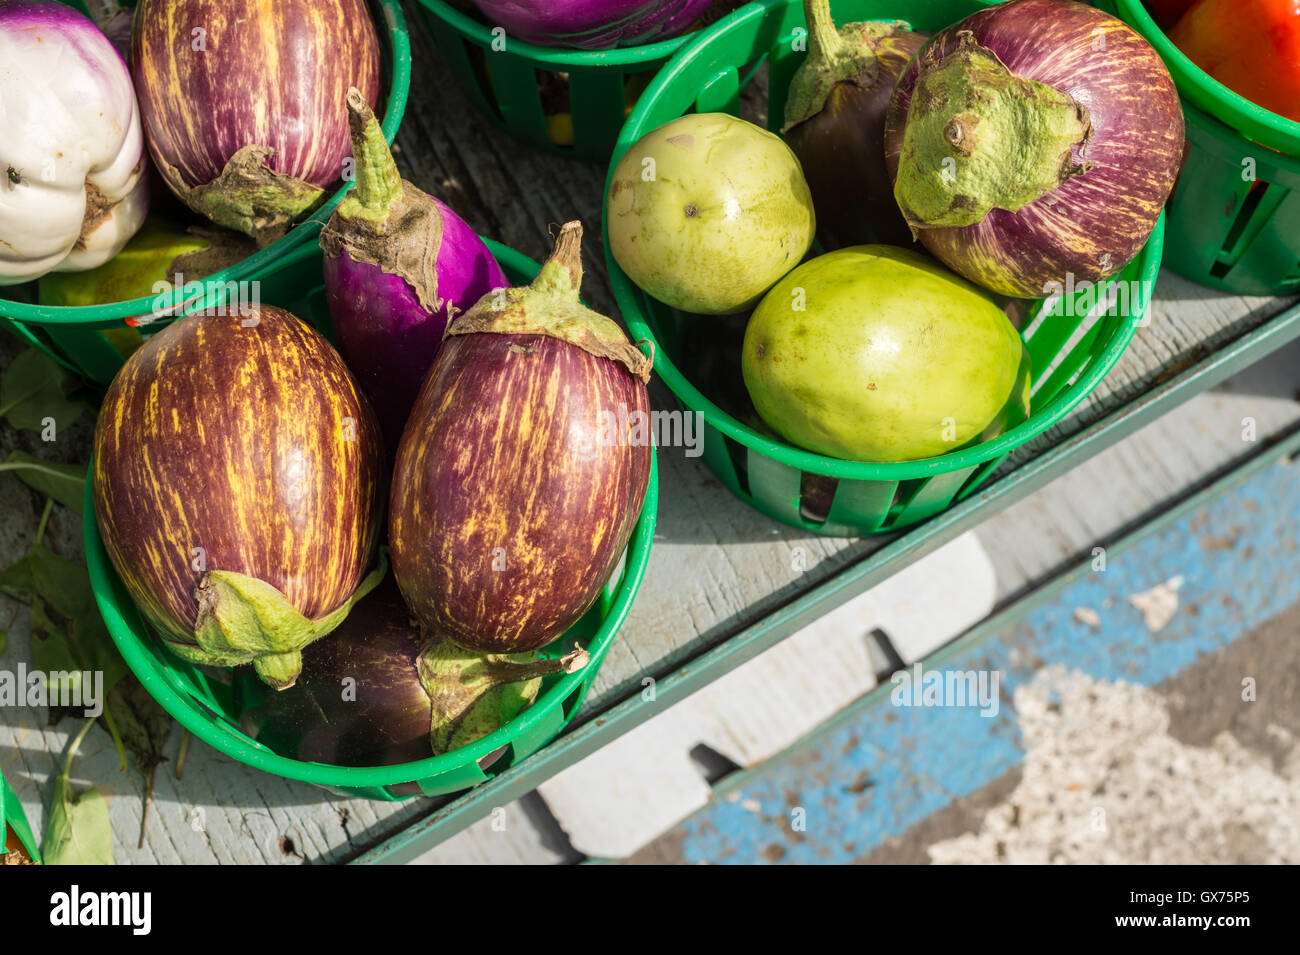 Udumalpet Eggplants at the local market - Stock Image